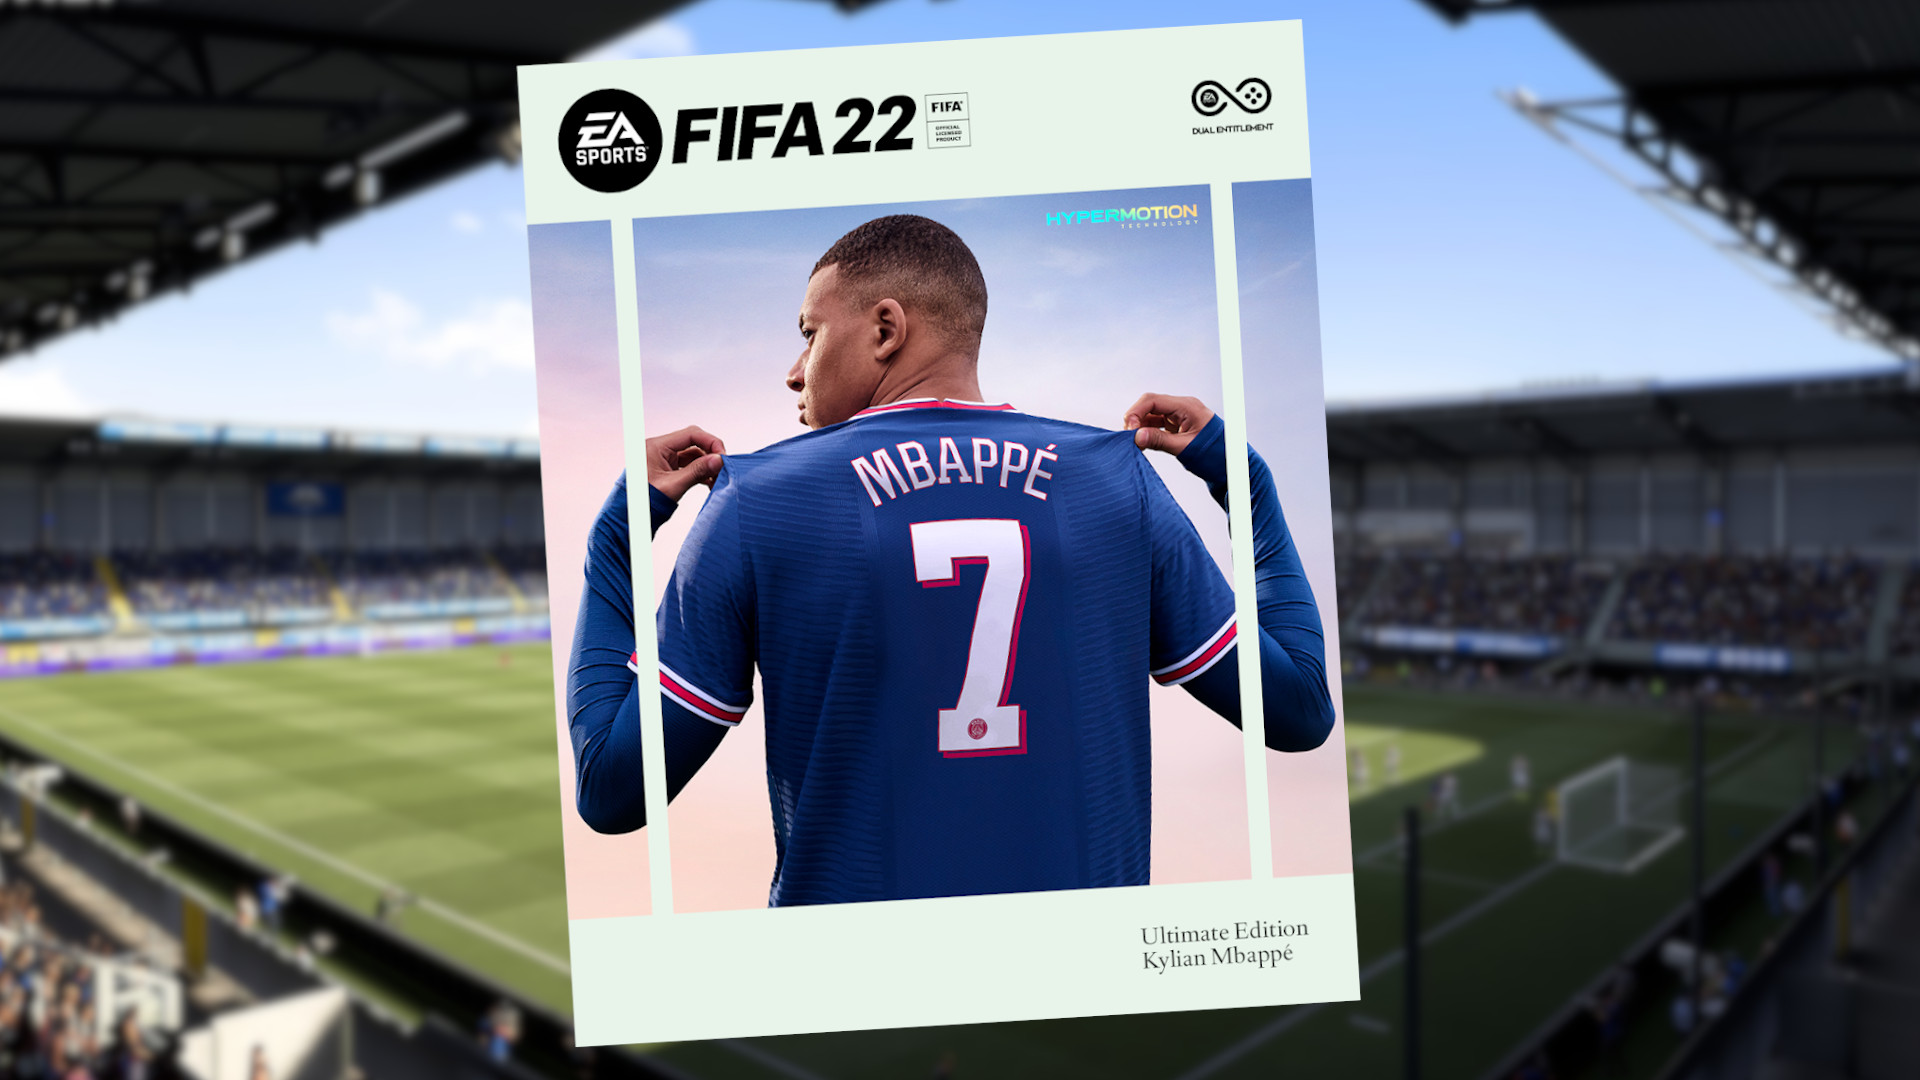 FIFA 22 Next Gen Free To Play